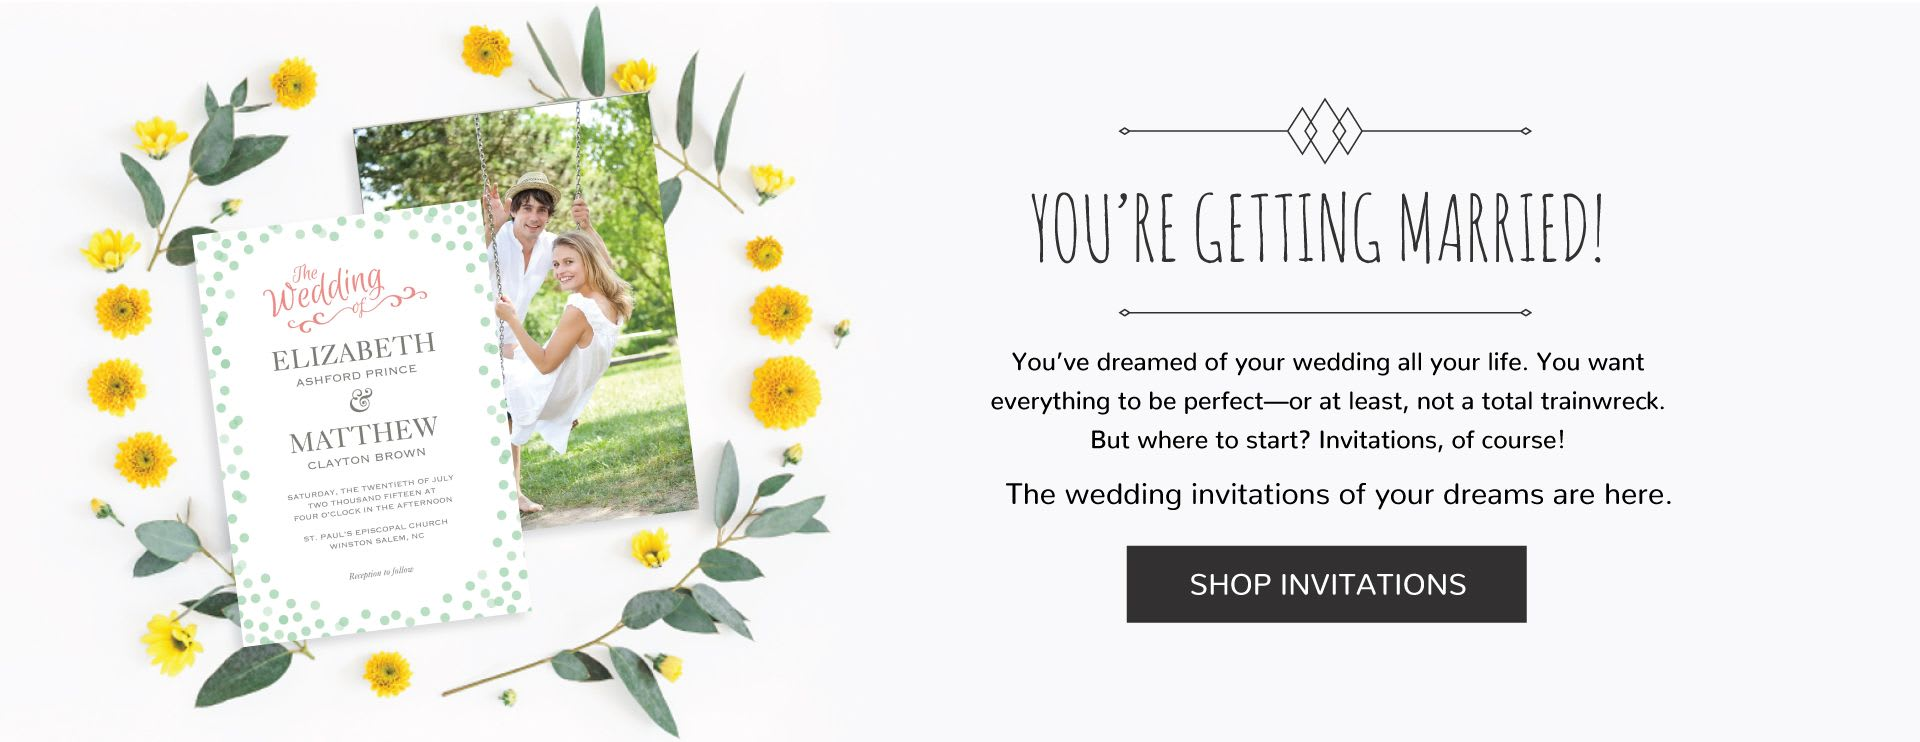 Wedding Invitations | Gifts for Bridesmaids & Groomsmen | Favors